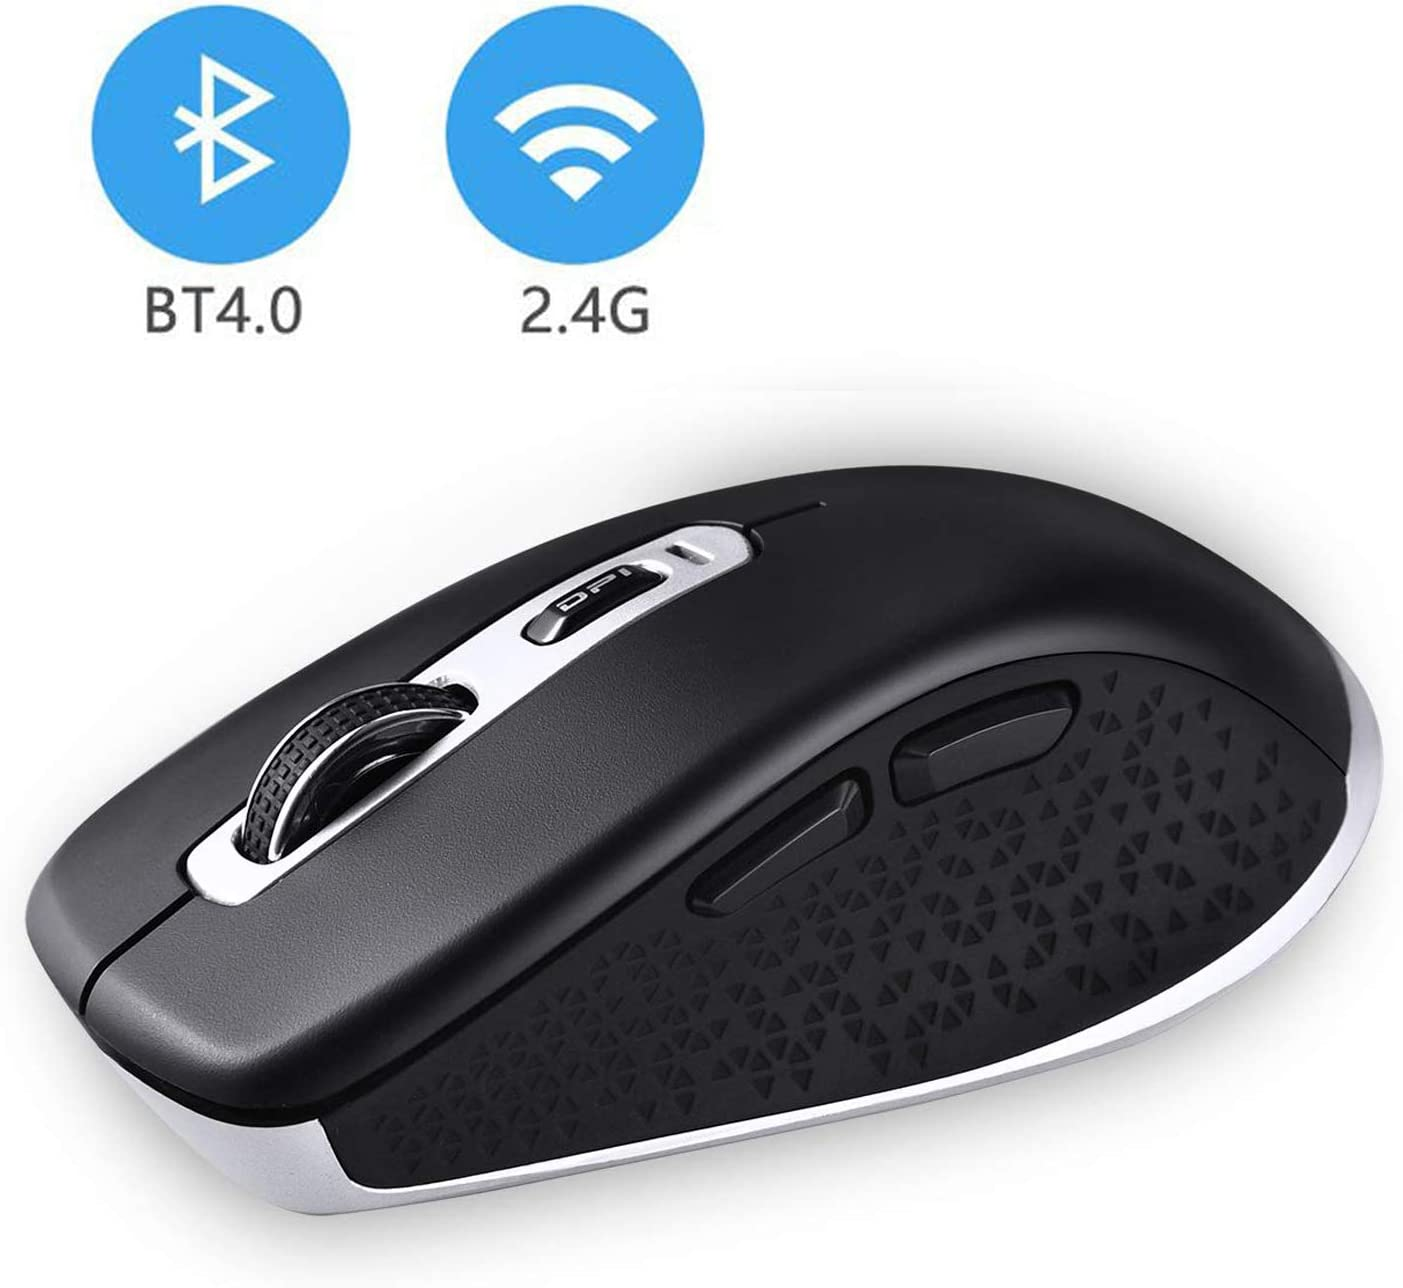 Wireless Bluetooth Mouse, Cimetech 2.4GHz Dual Mode Slim Noiseless Optical Wireless Mouse with 2400 DPI Compatible for PC, Laptop, Mac, Android, Windows (BT4.0+2.4G Dual Mode - Black)